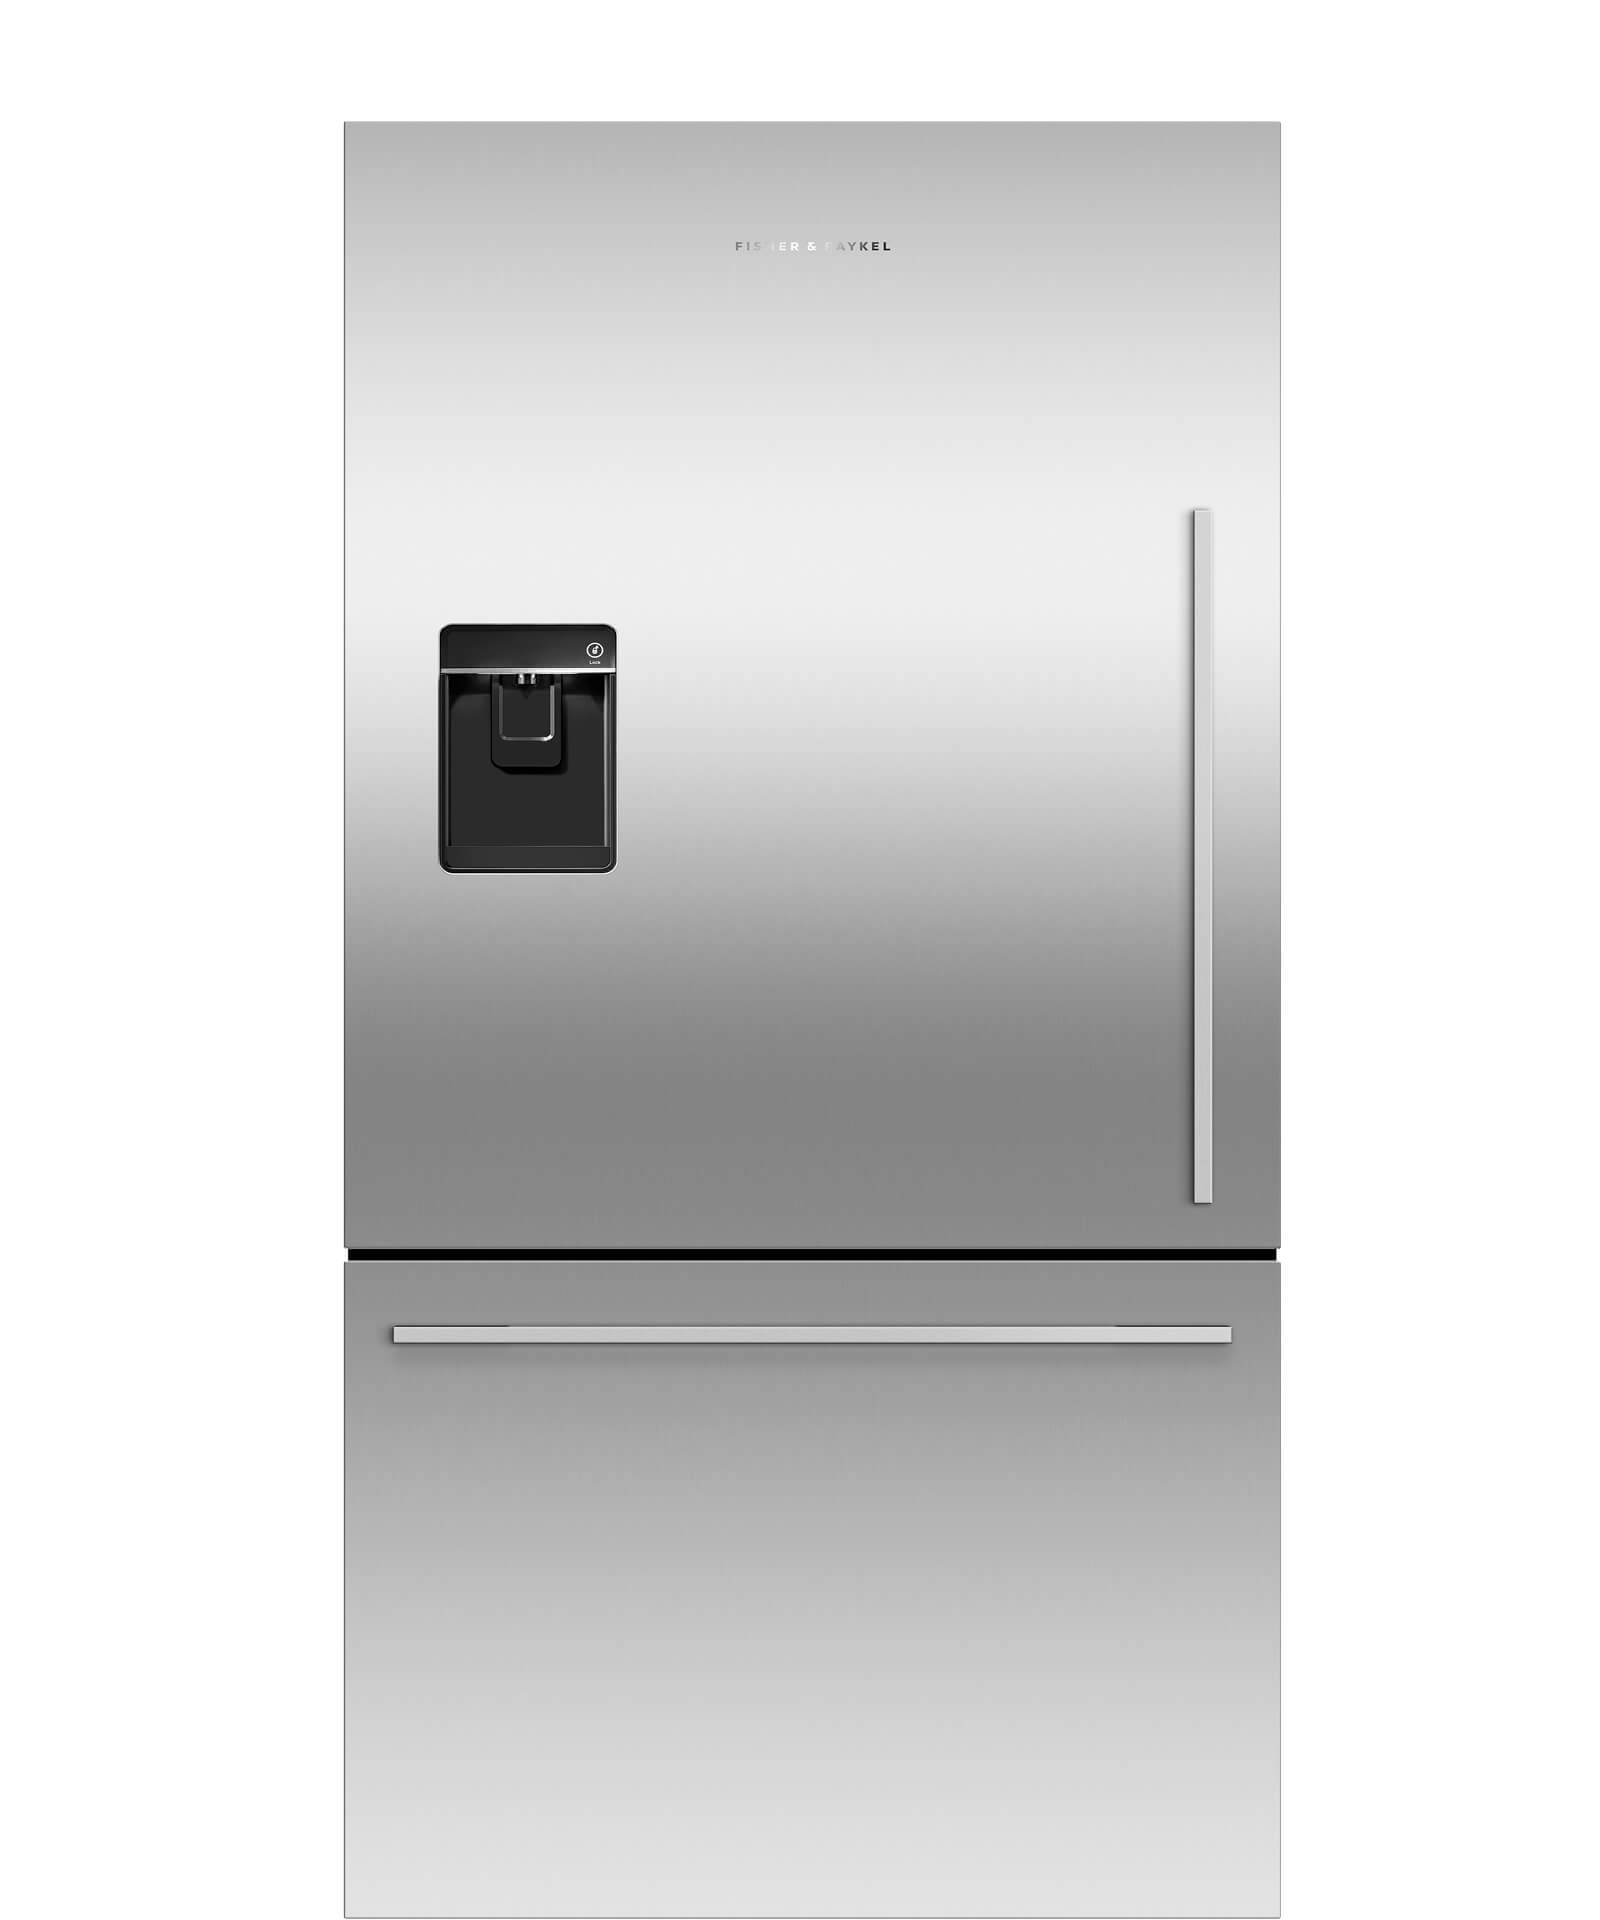 RF522WDLUX4 - ActiveSmart™ Fridge - 790mm Door Drawer with Ice & Water 445L - 25461